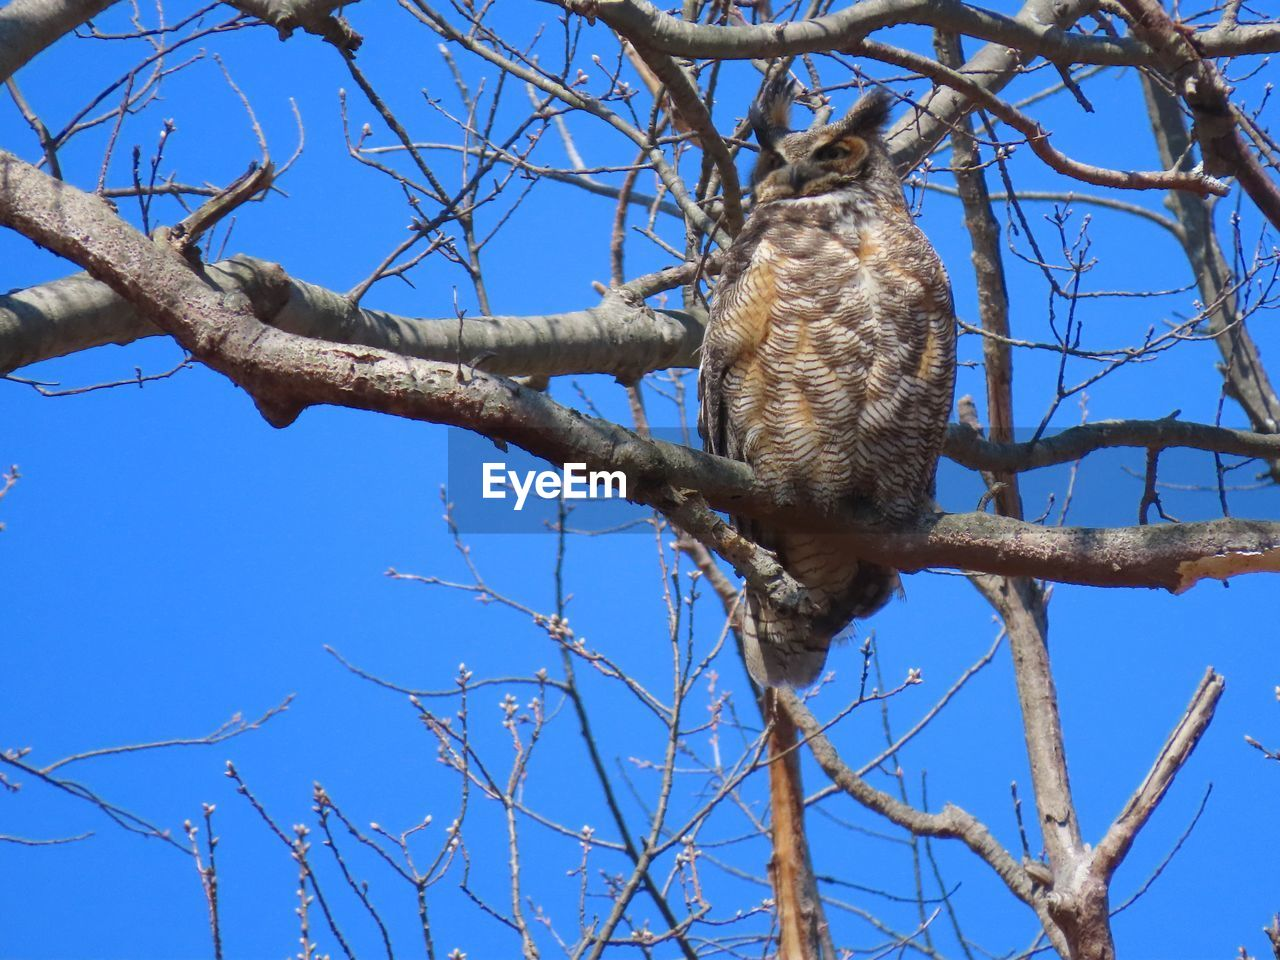 branch, low angle view, animal themes, animal, bare tree, vertebrate, animal wildlife, animals in the wild, one animal, tree, sky, plant, nature, blue, perching, day, bird, no people, clear sky, outdoors